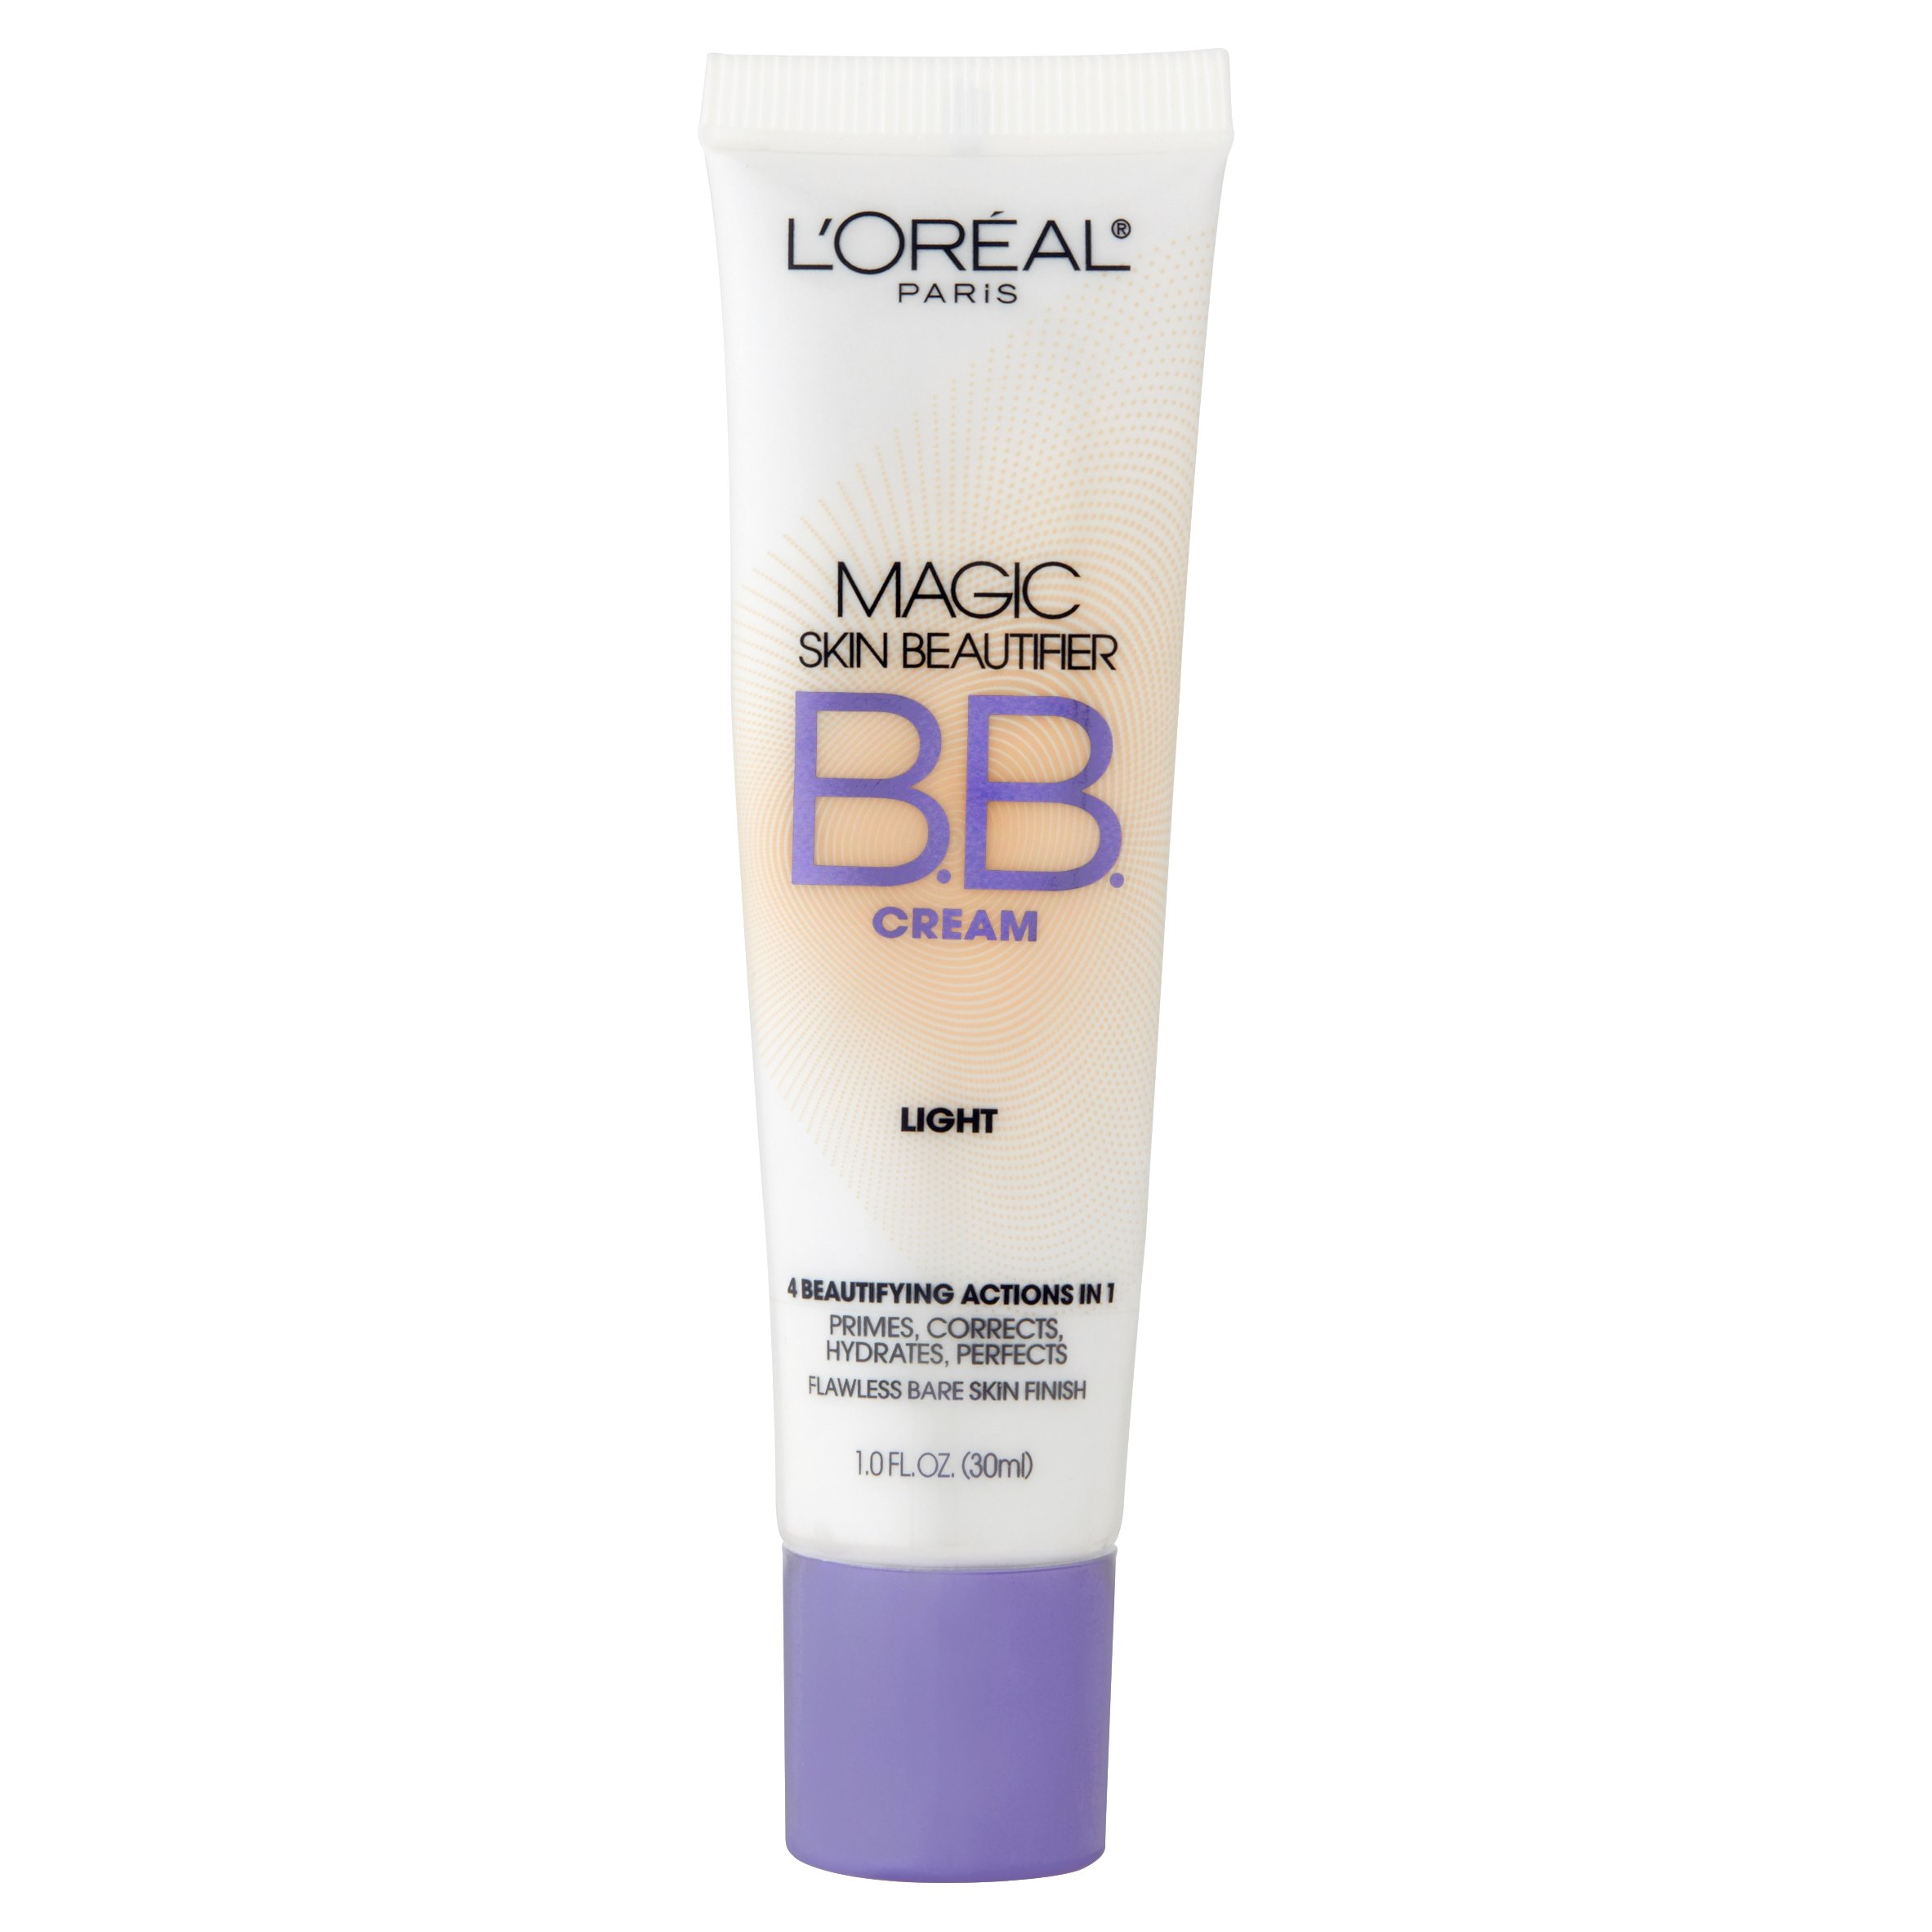 L'Oréal Paris Magic Skin Beautifier BB Cream - Walmart.com